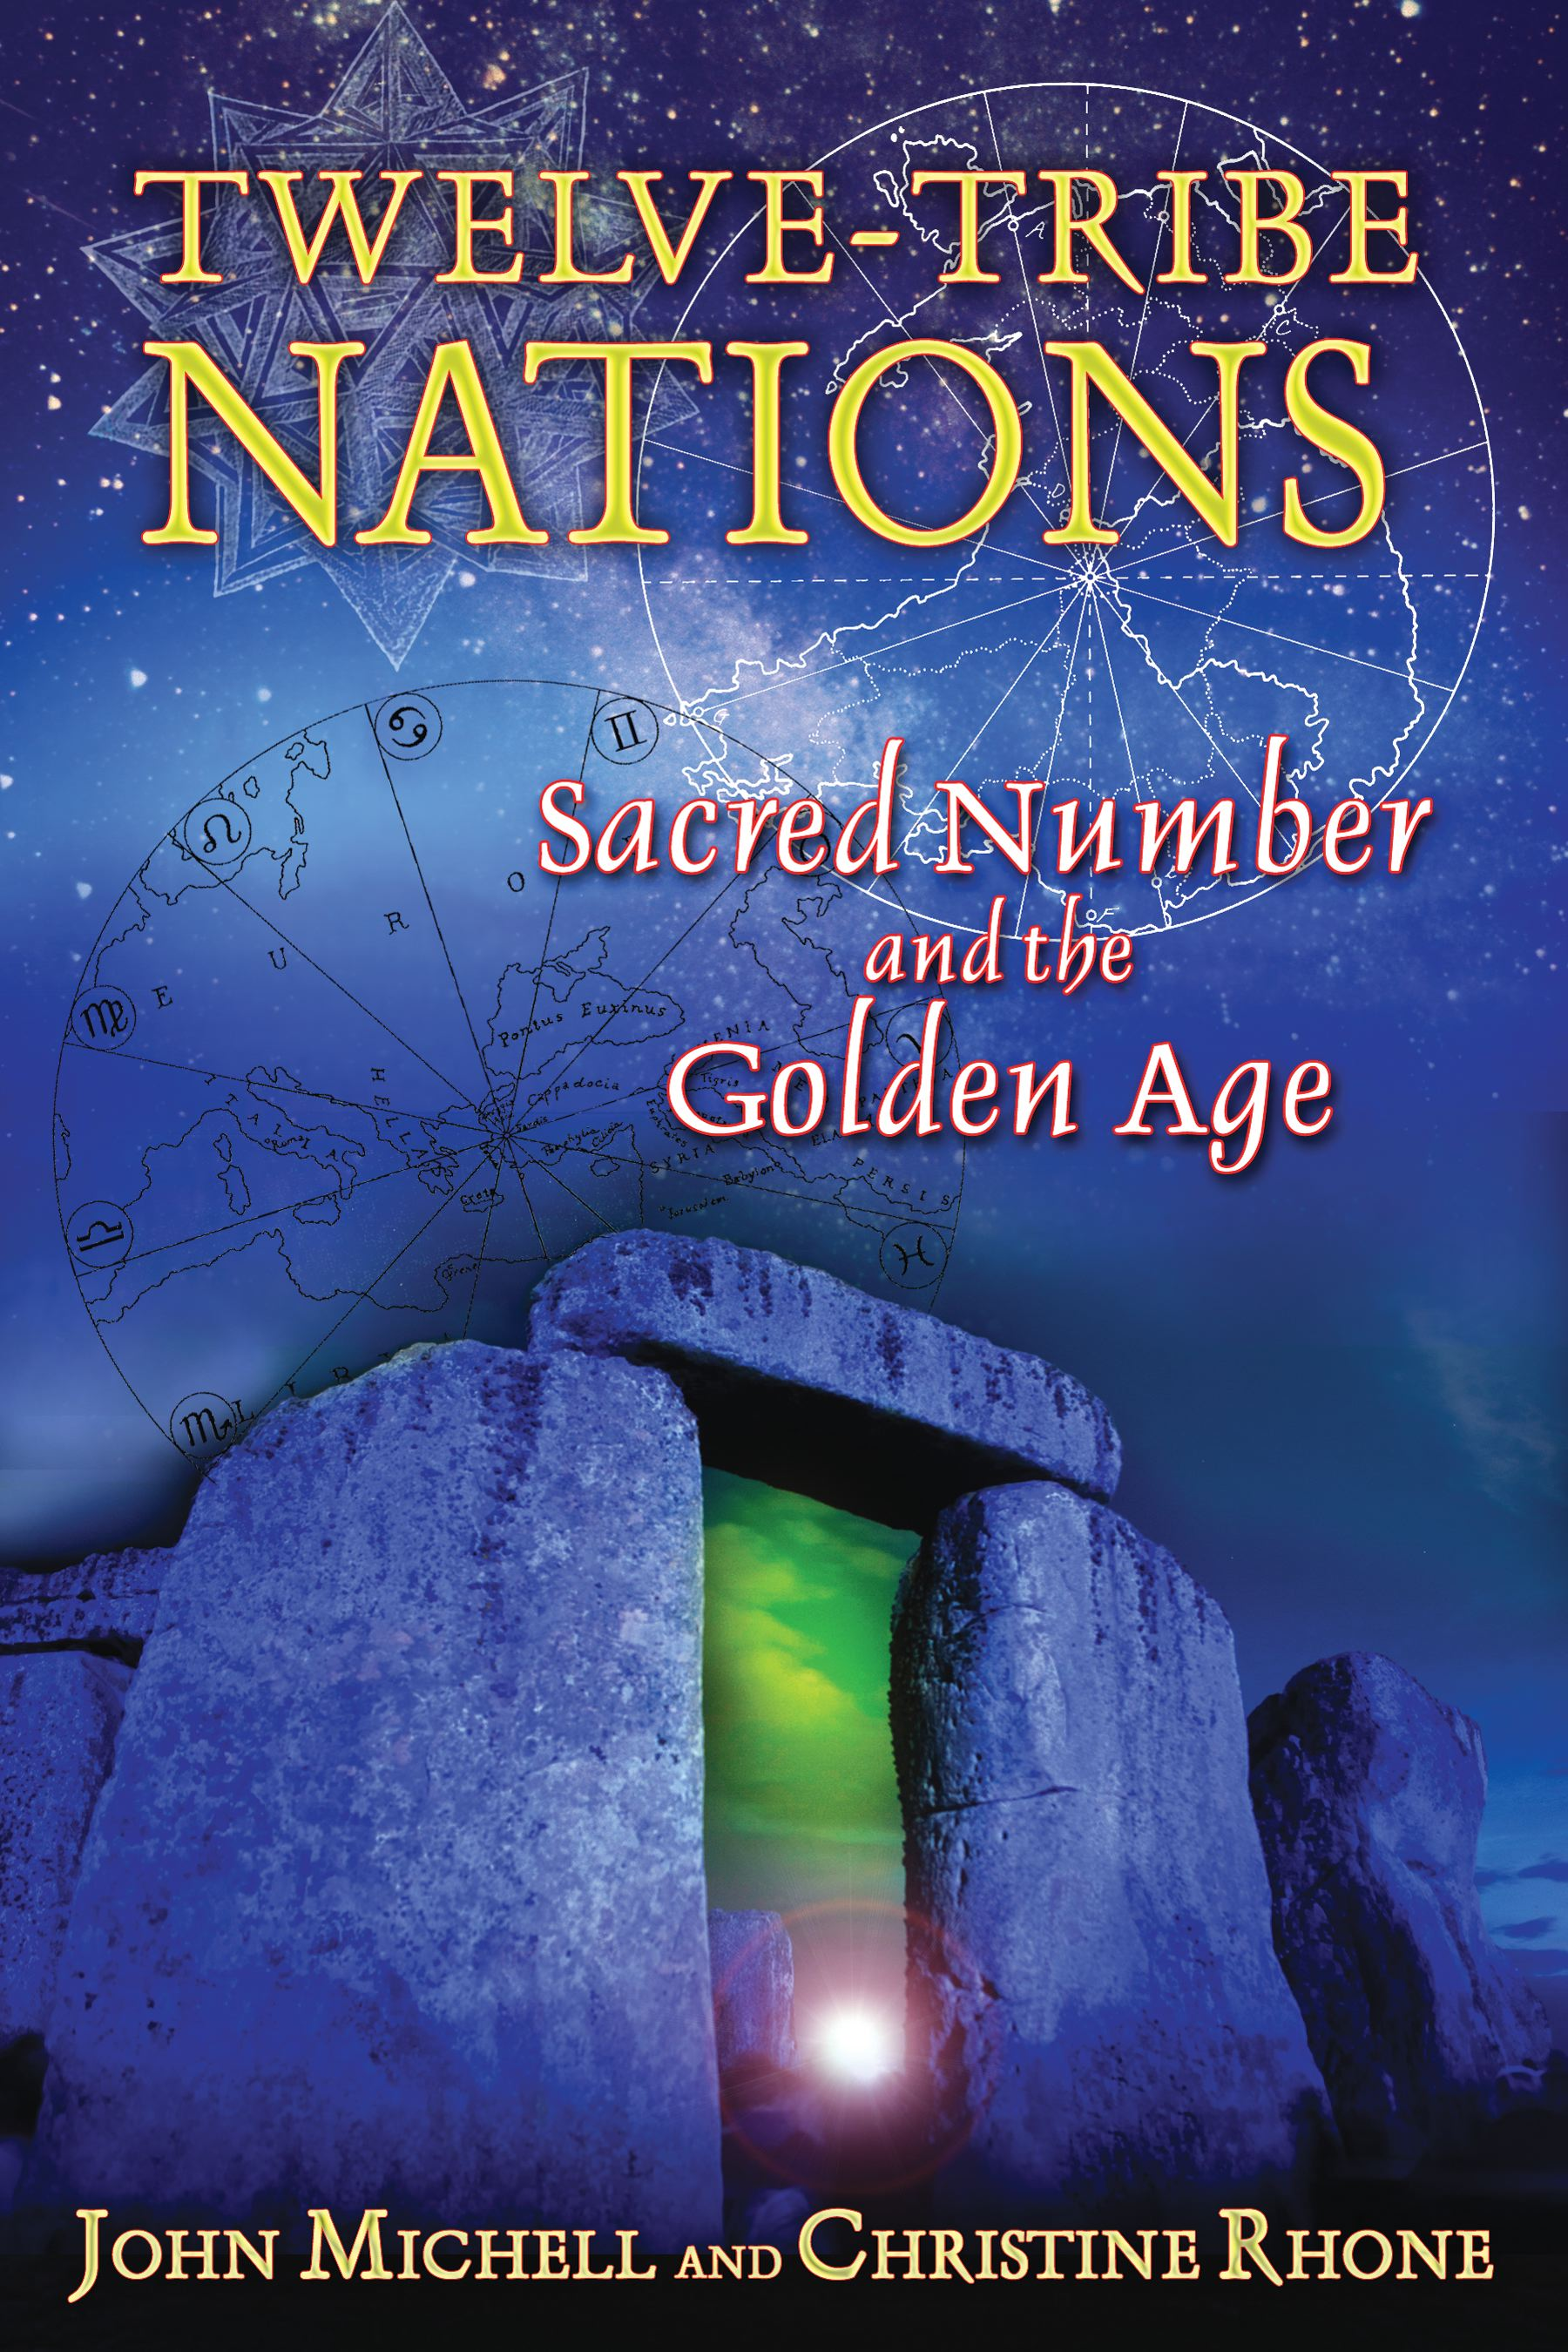 Twelve tribe nations 9781594772375 hr